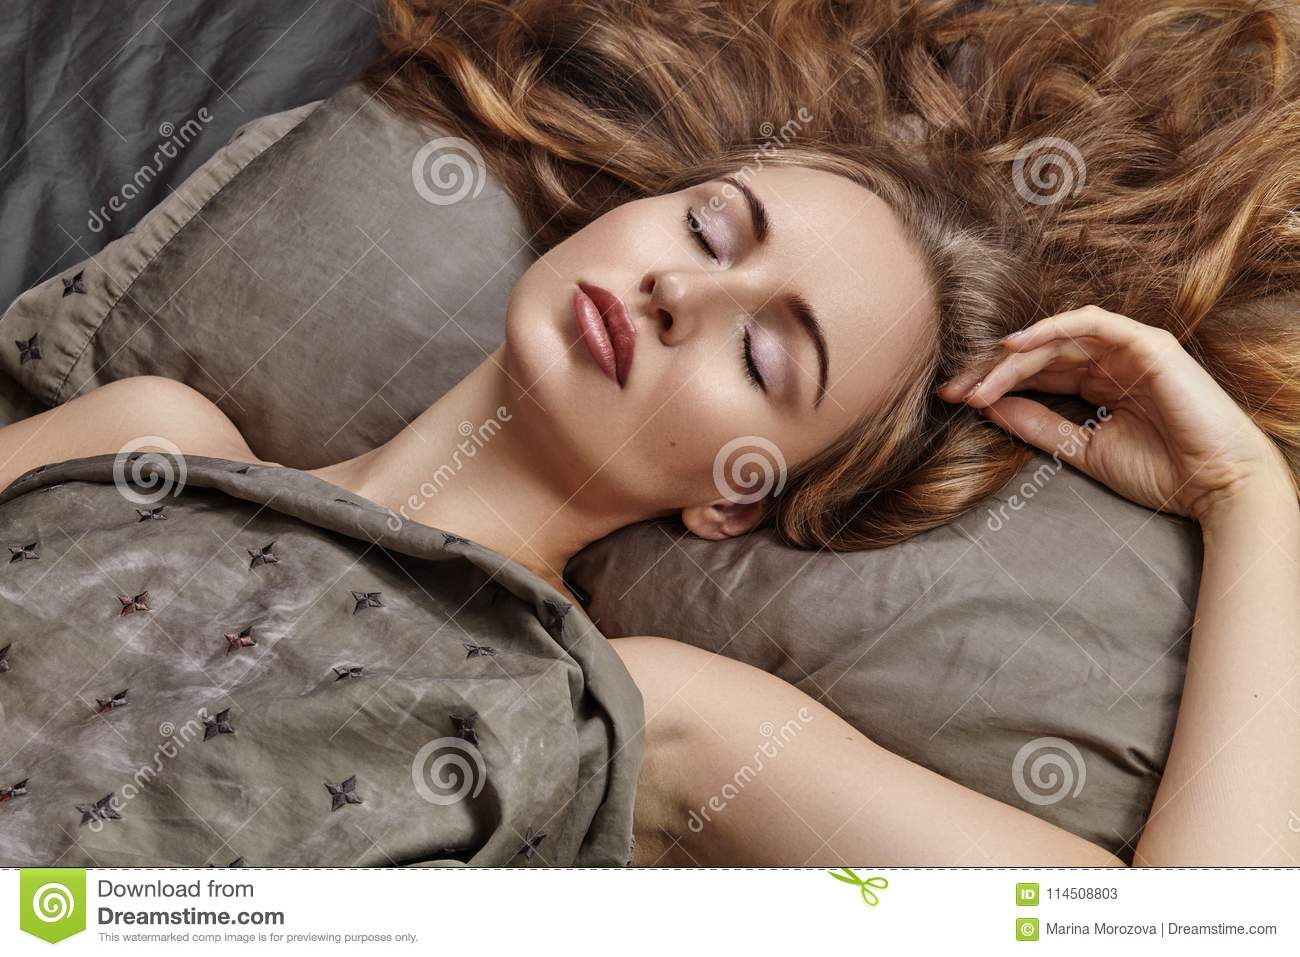 903c627427b Beautiful Woman Sleeping while lying in Bed with Comfort. Sweet dreams.  model with long curly hair relaxing on grey sheets.